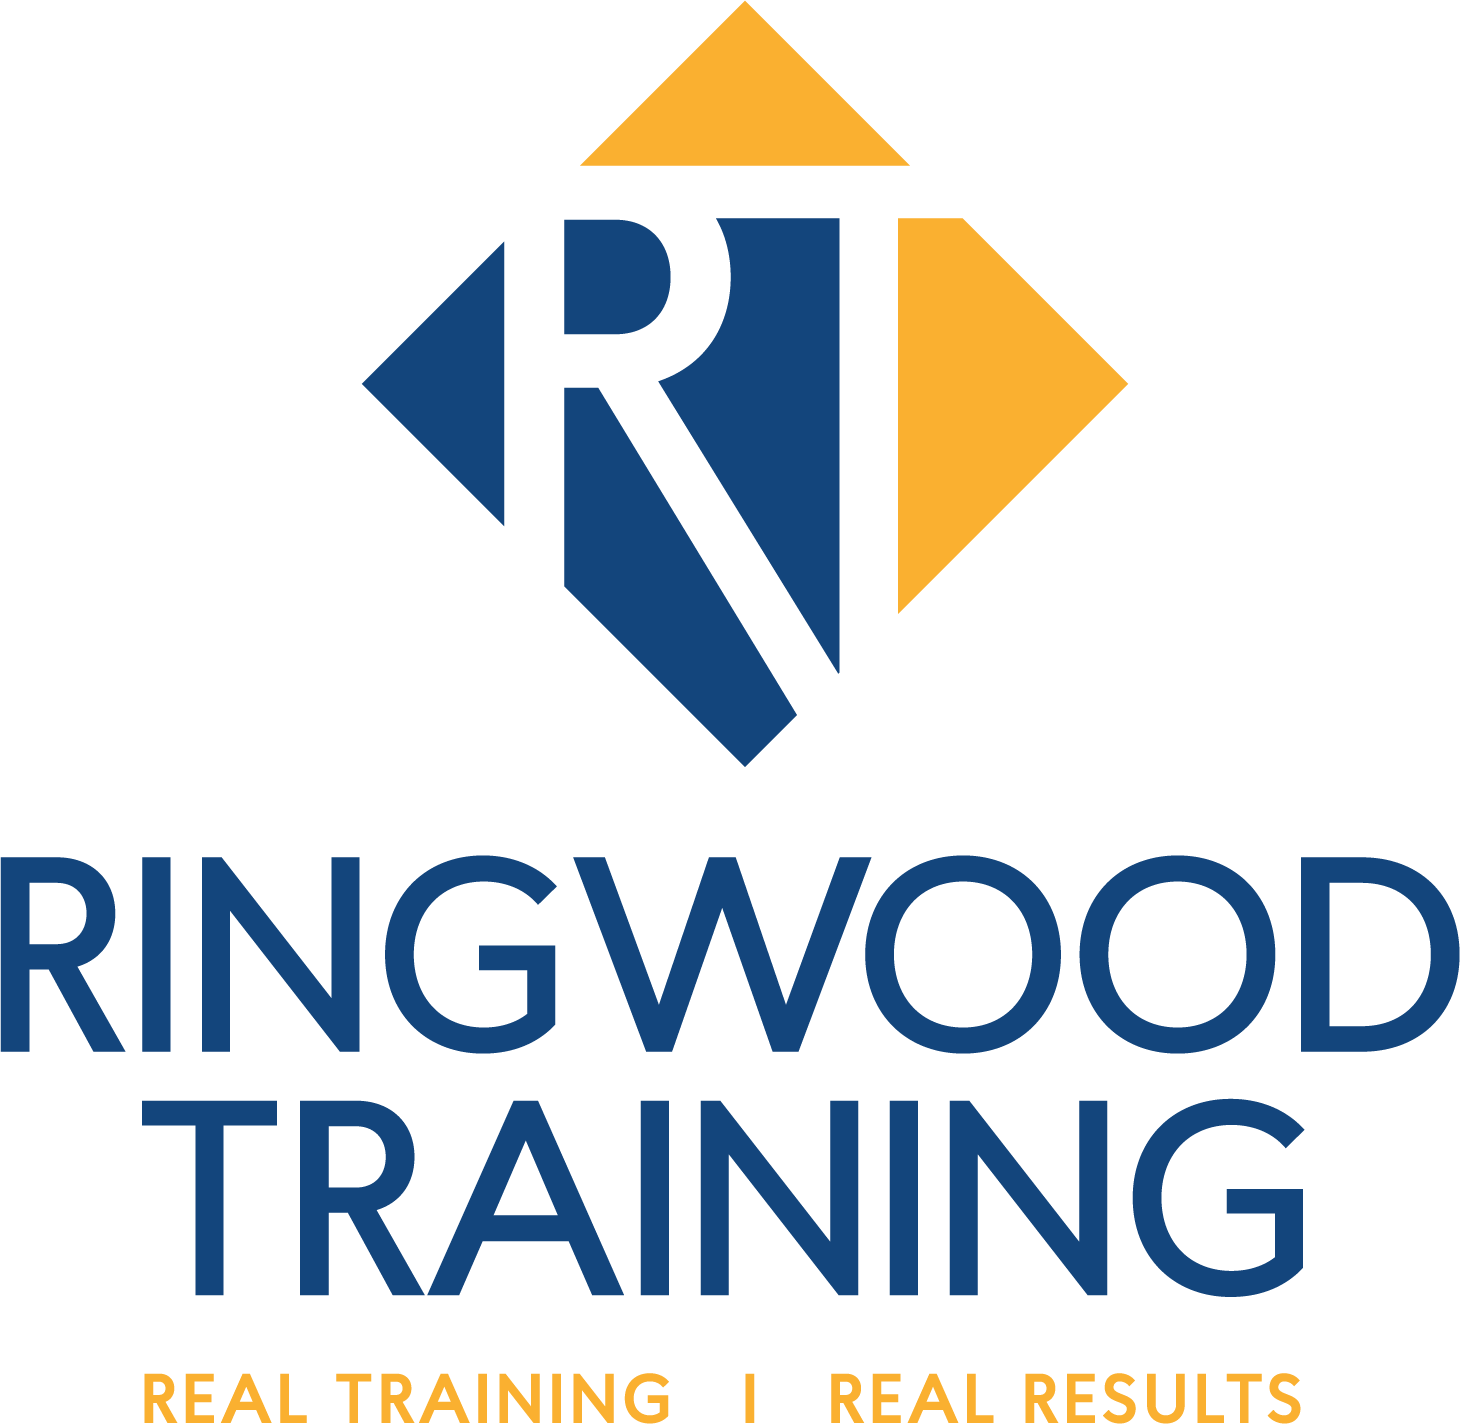 It's not too late to enrol in SBAT, Apprenticeship and Post School IT qualifications - Ringwood Training - RT